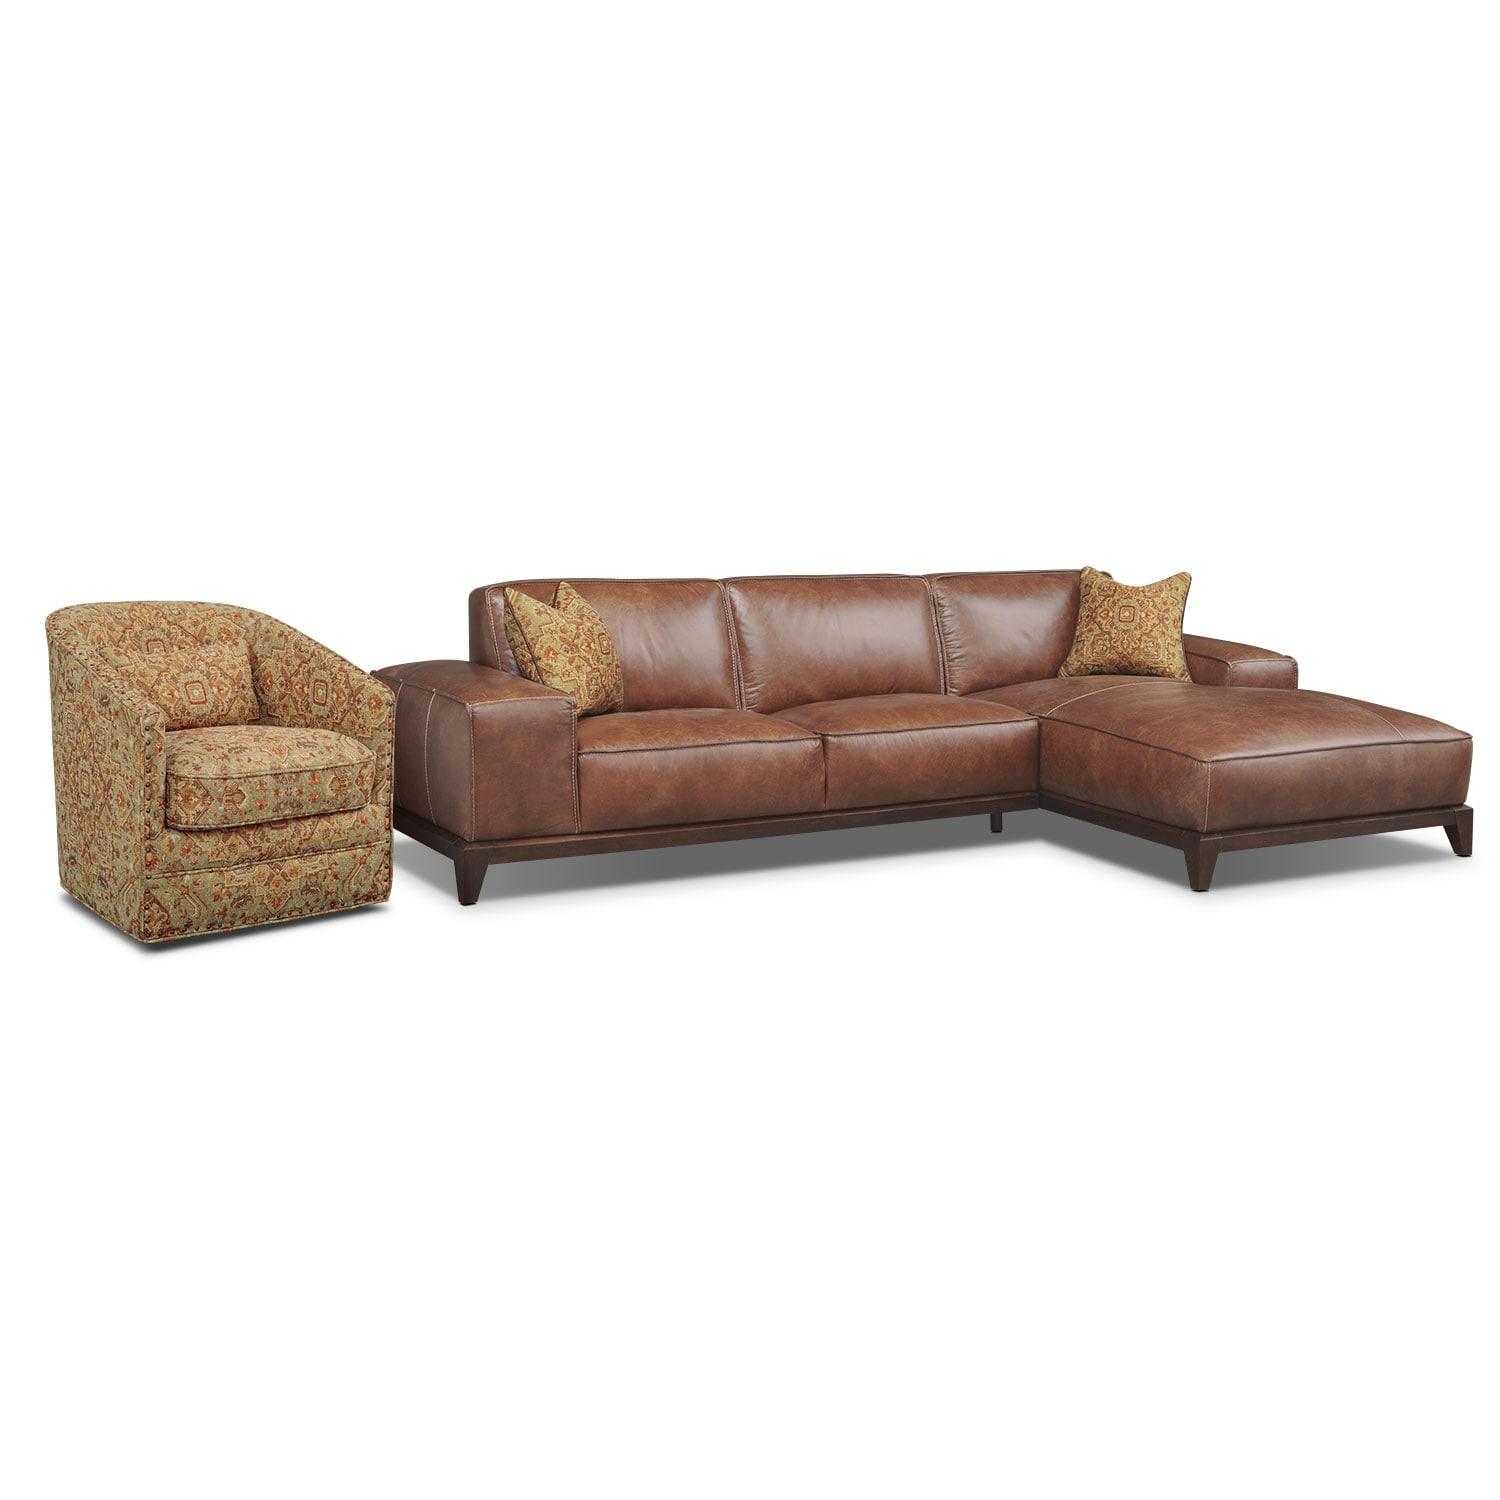 Living Room Furniture - Harrison 2-Piece Right-Facing Sectional with Swivel Chair - Tobacco